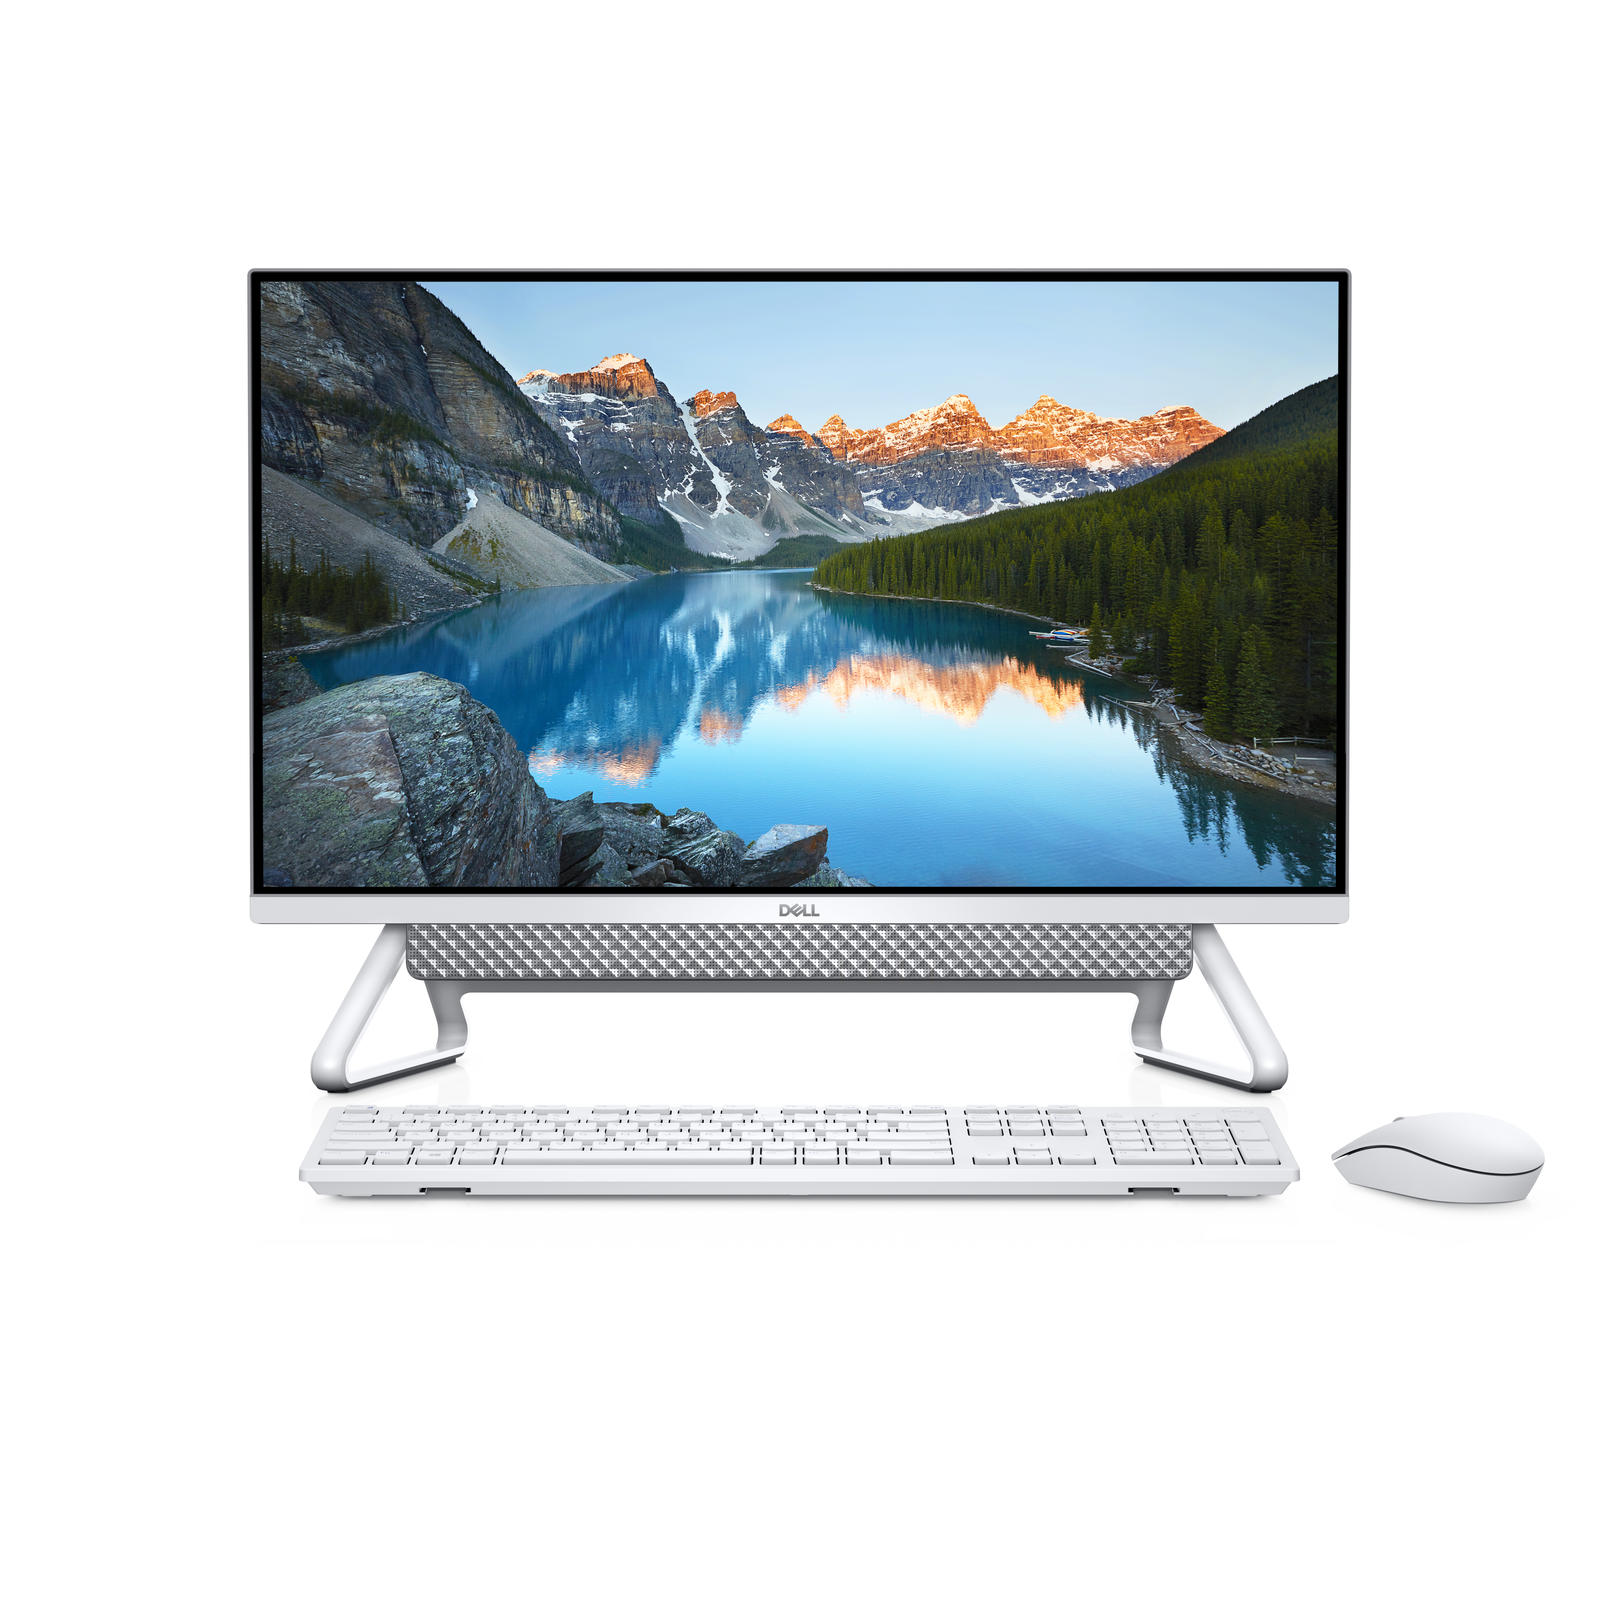 Dell Inspiron 7790 All-in-One-PC 27